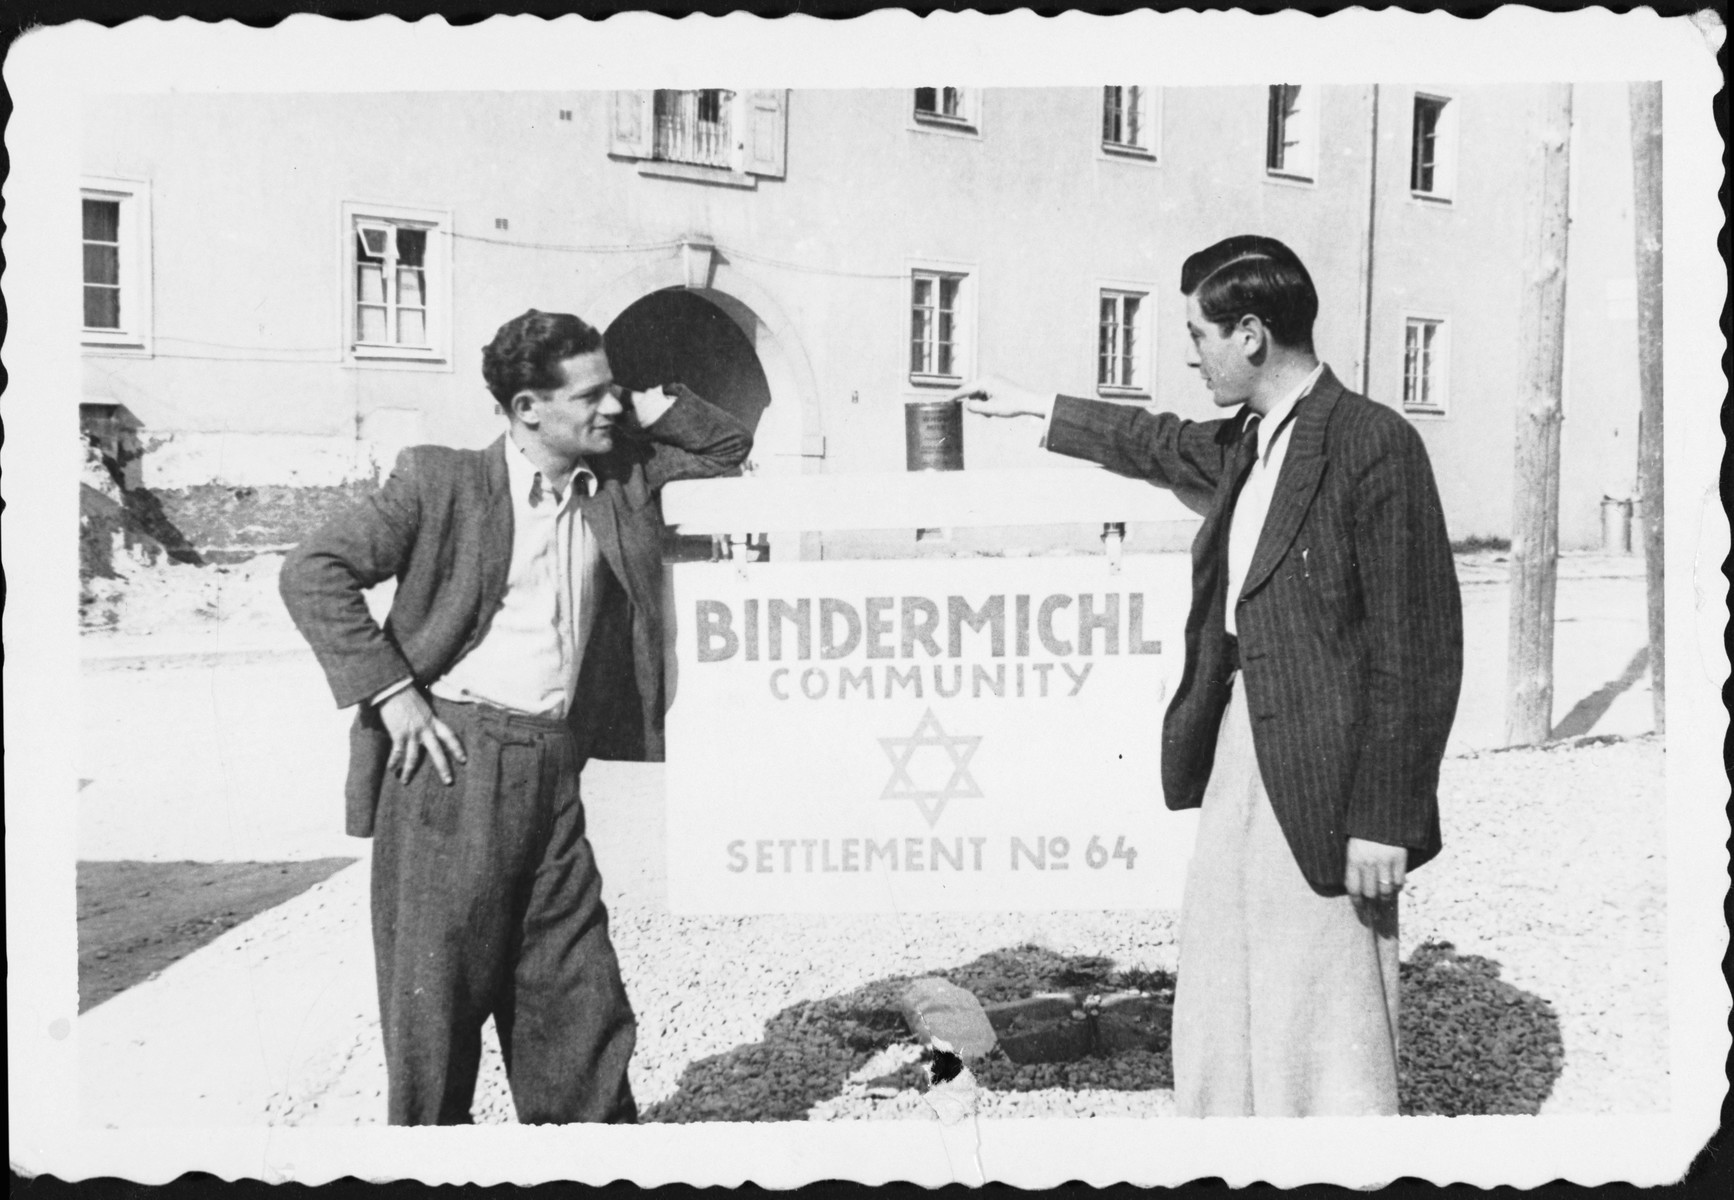 Two men pose next to a sign outside the Bindermichl displaced persons' camp in Linz, Austria.